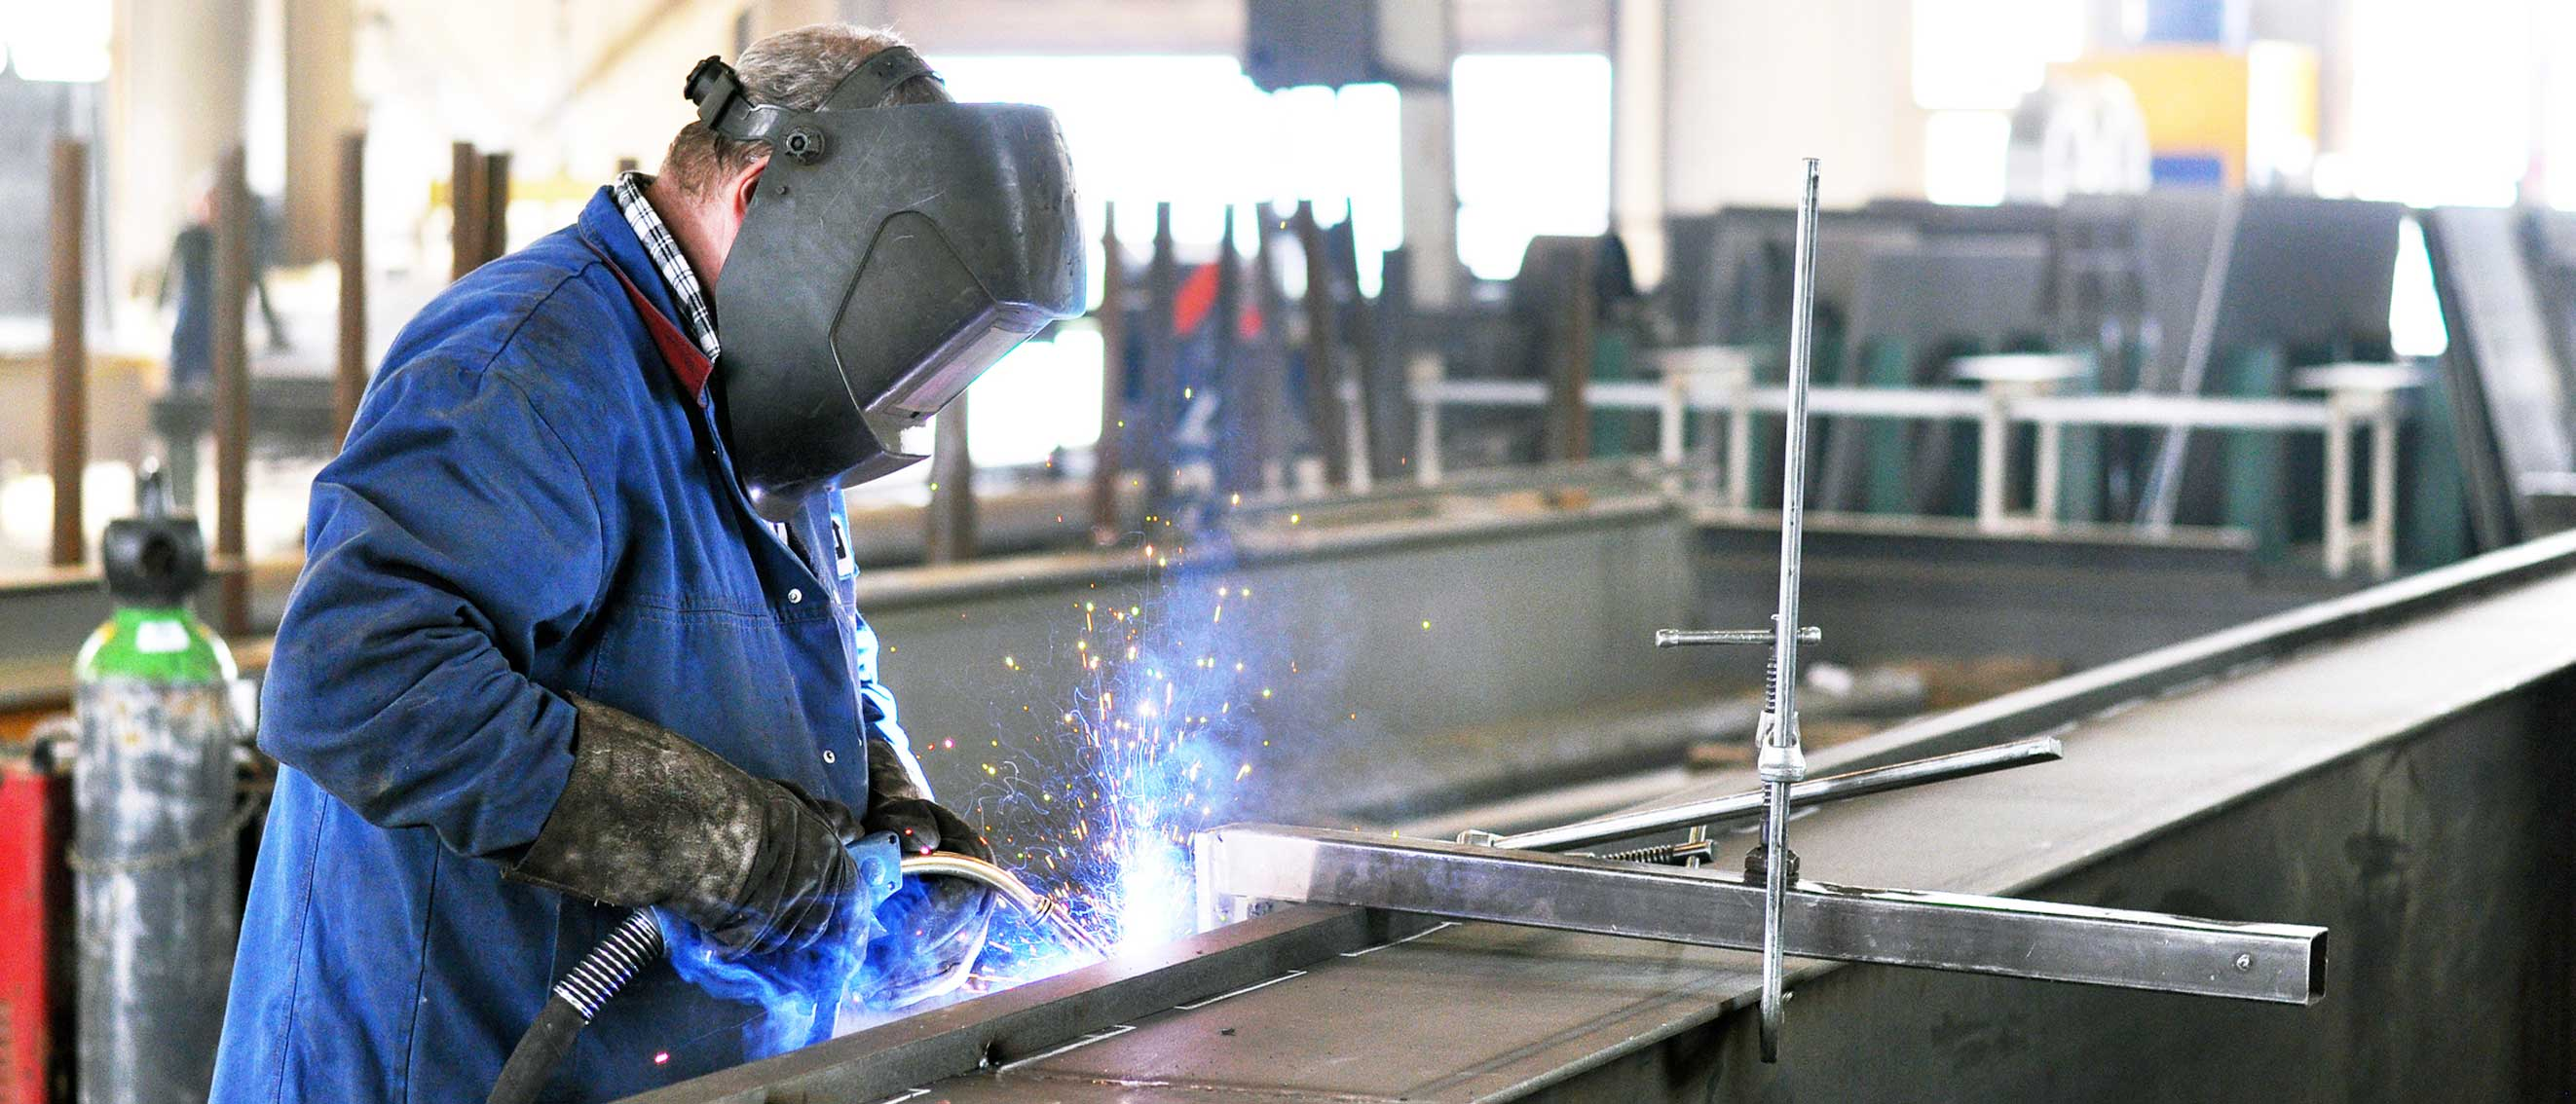 Food services welding by Emergency Machining Services in Gainsville, GA